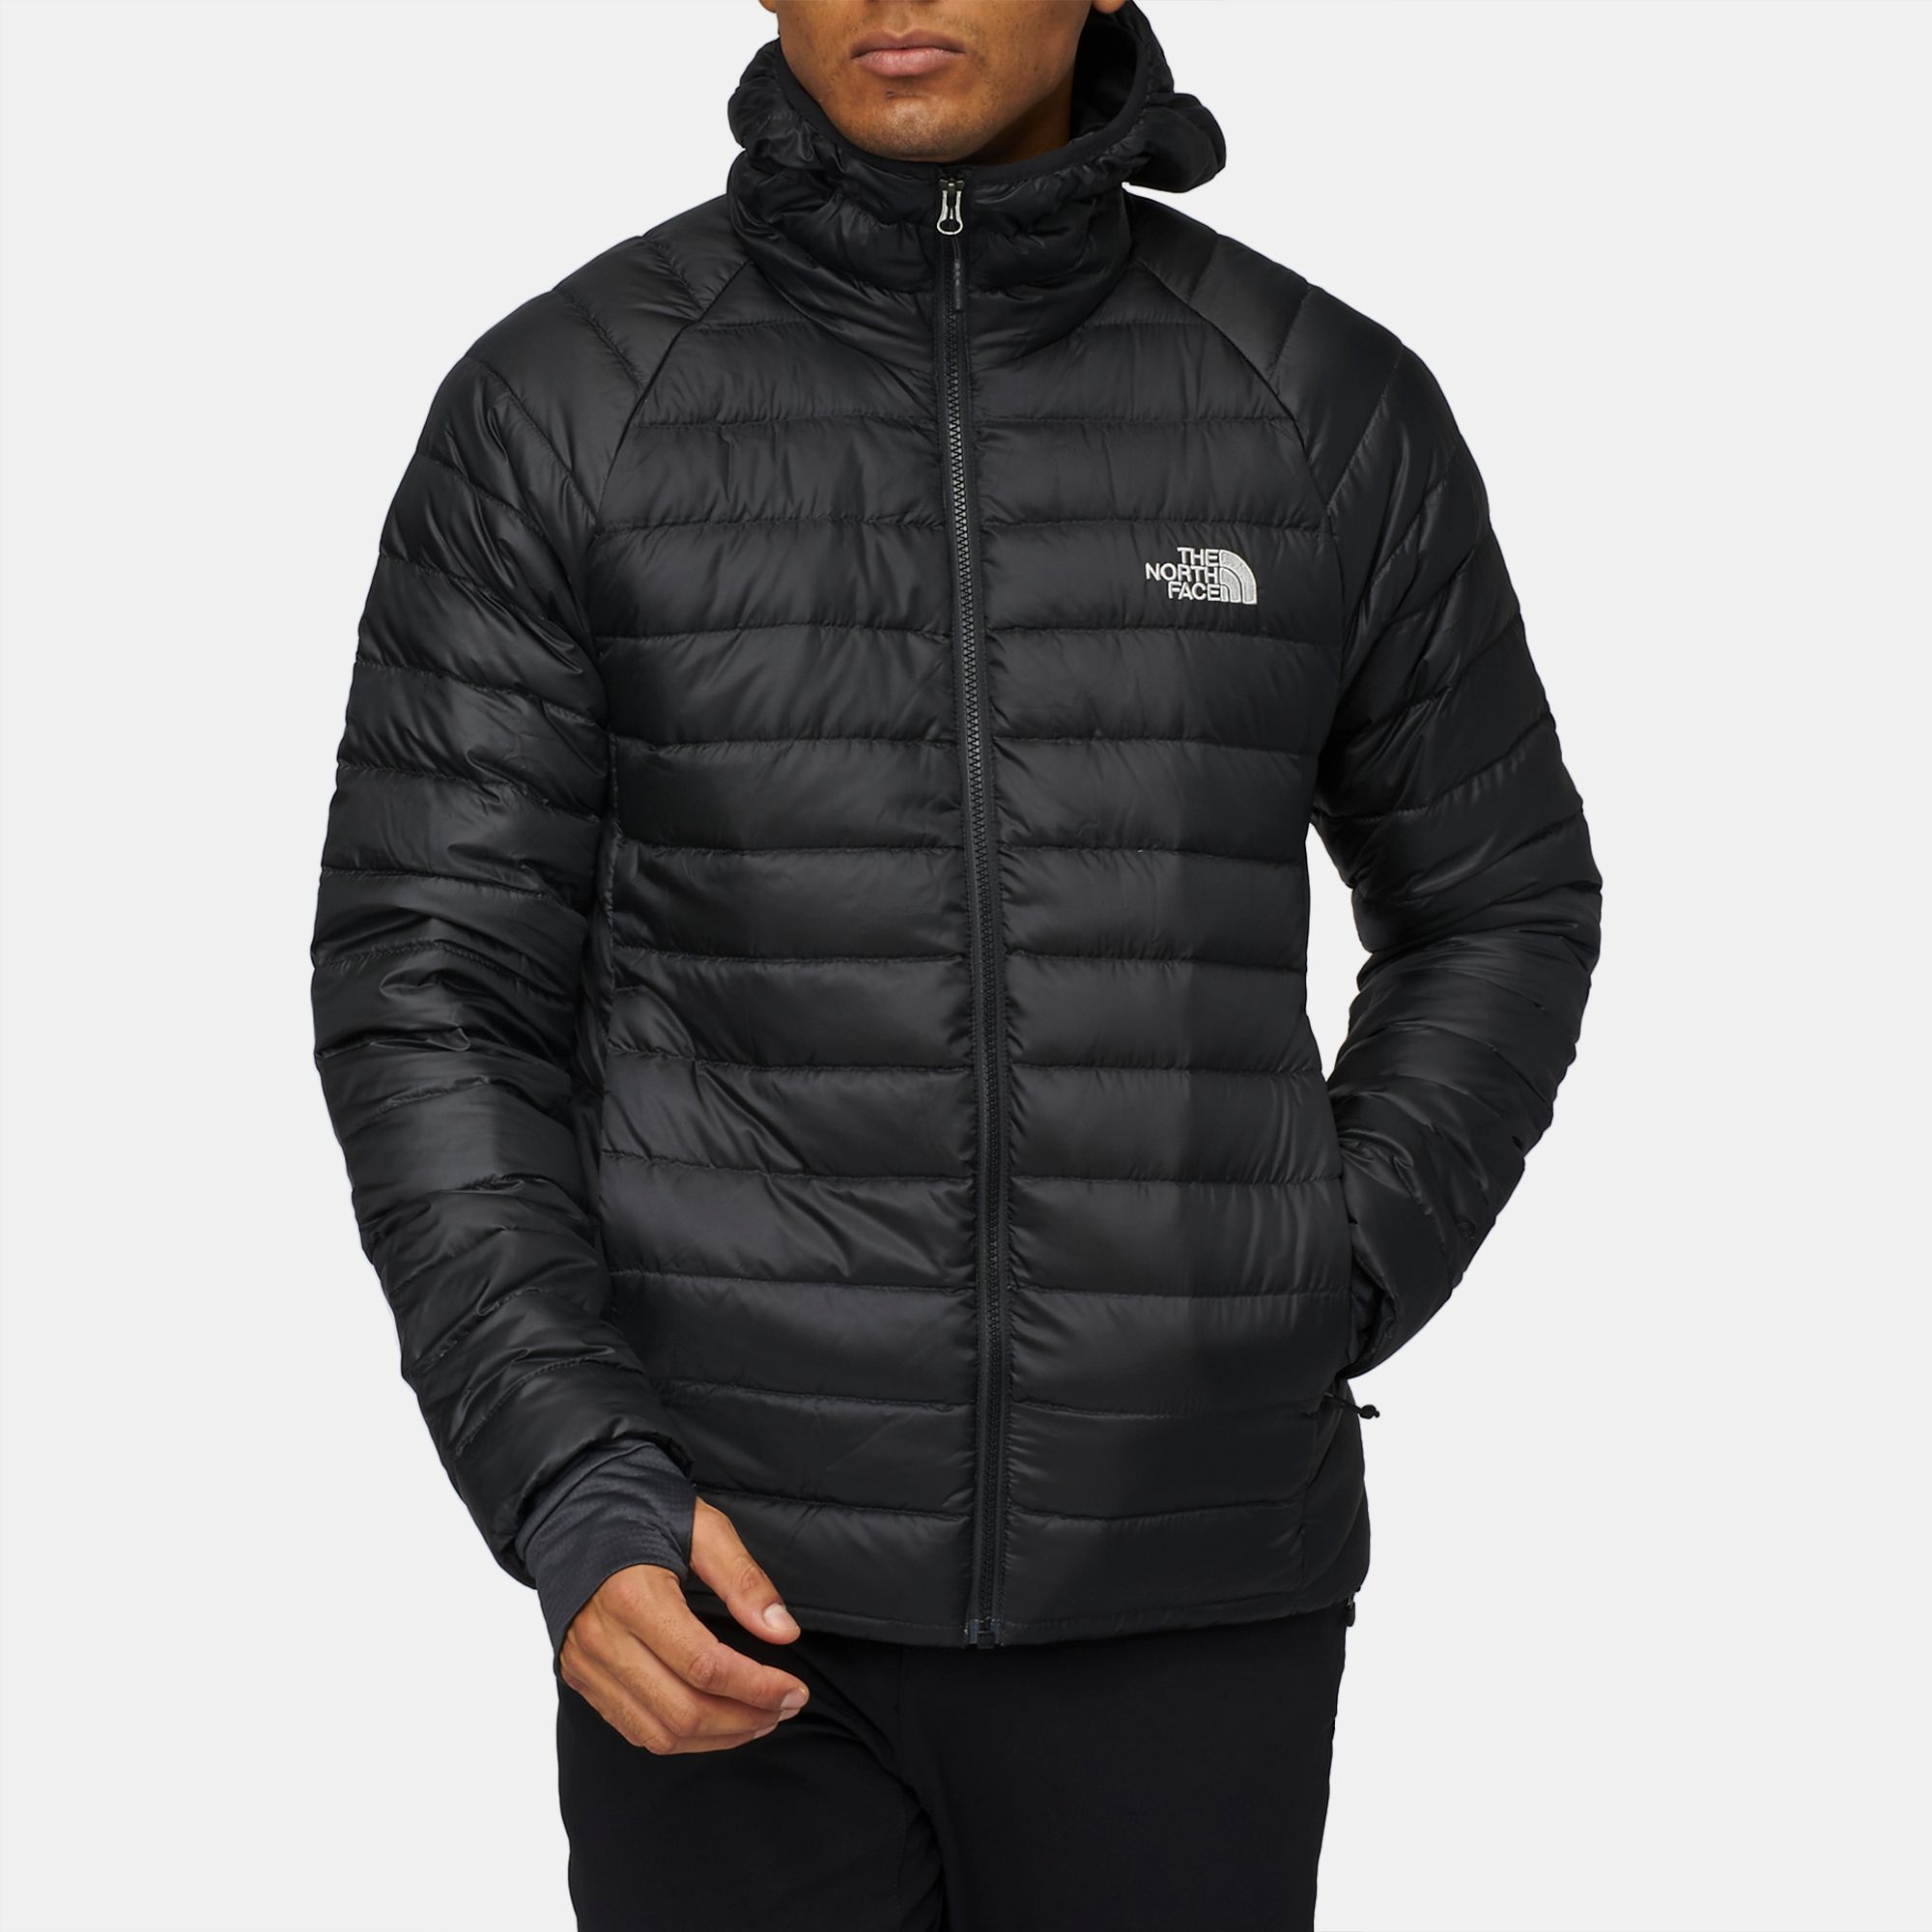 105b6bb63 The North Face Trevail Jacket